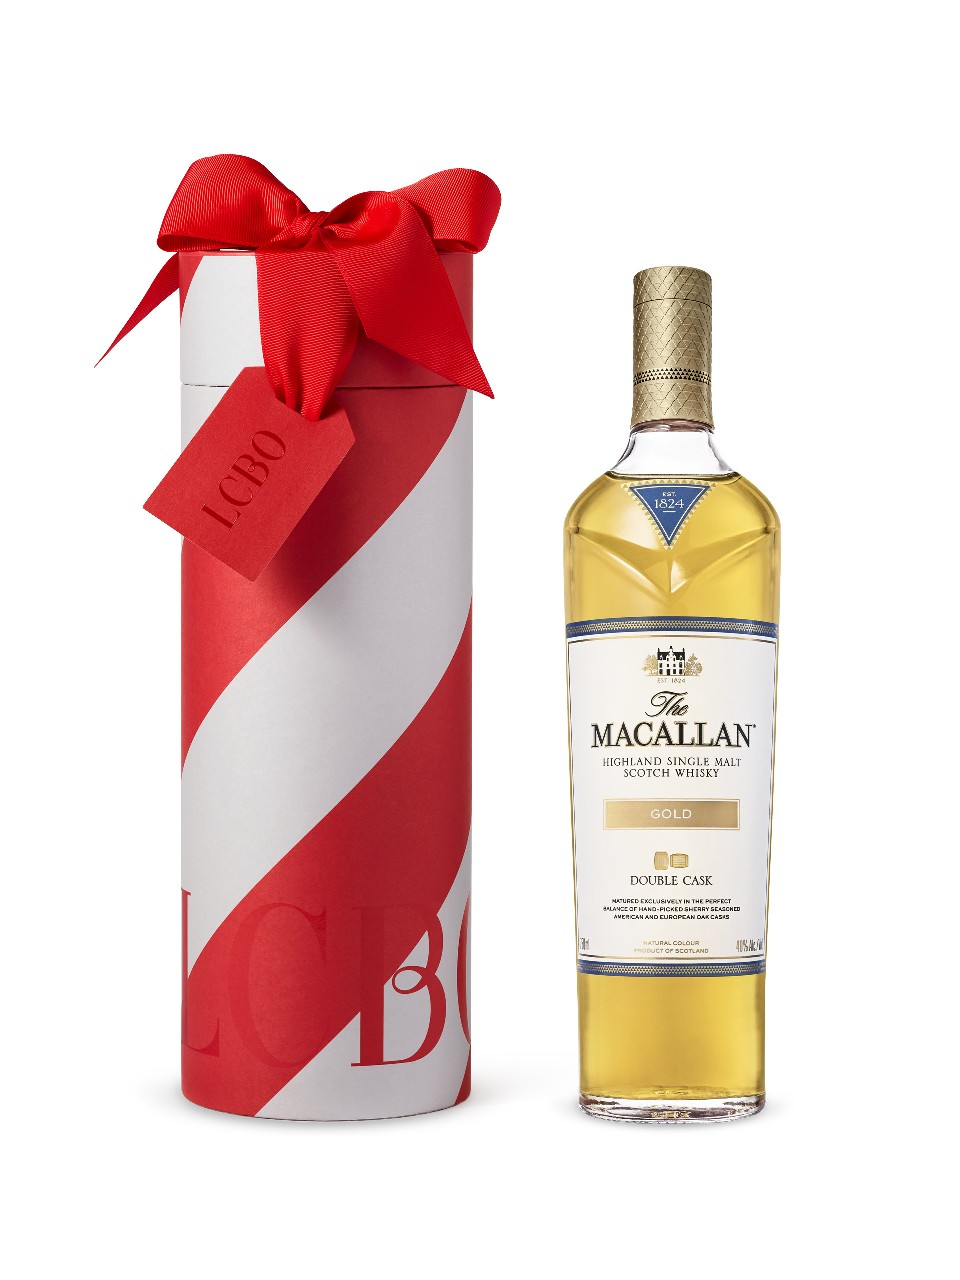 Macallan Gold Highlands Single Malt Scotch Whisky in Gift Box from LCBO